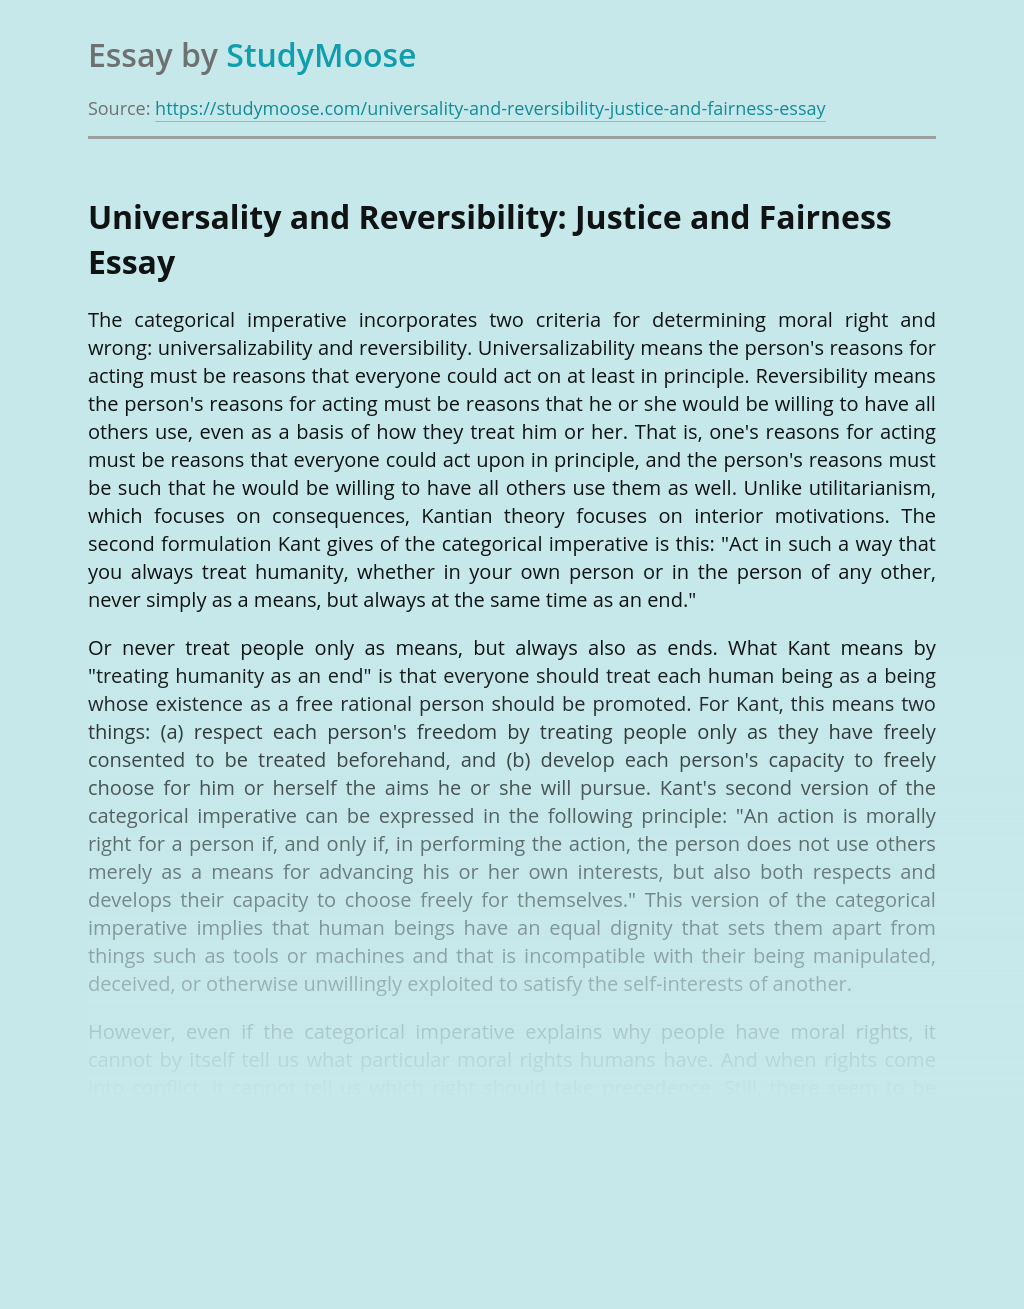 Universality and Reversibility: Justice and Fairness